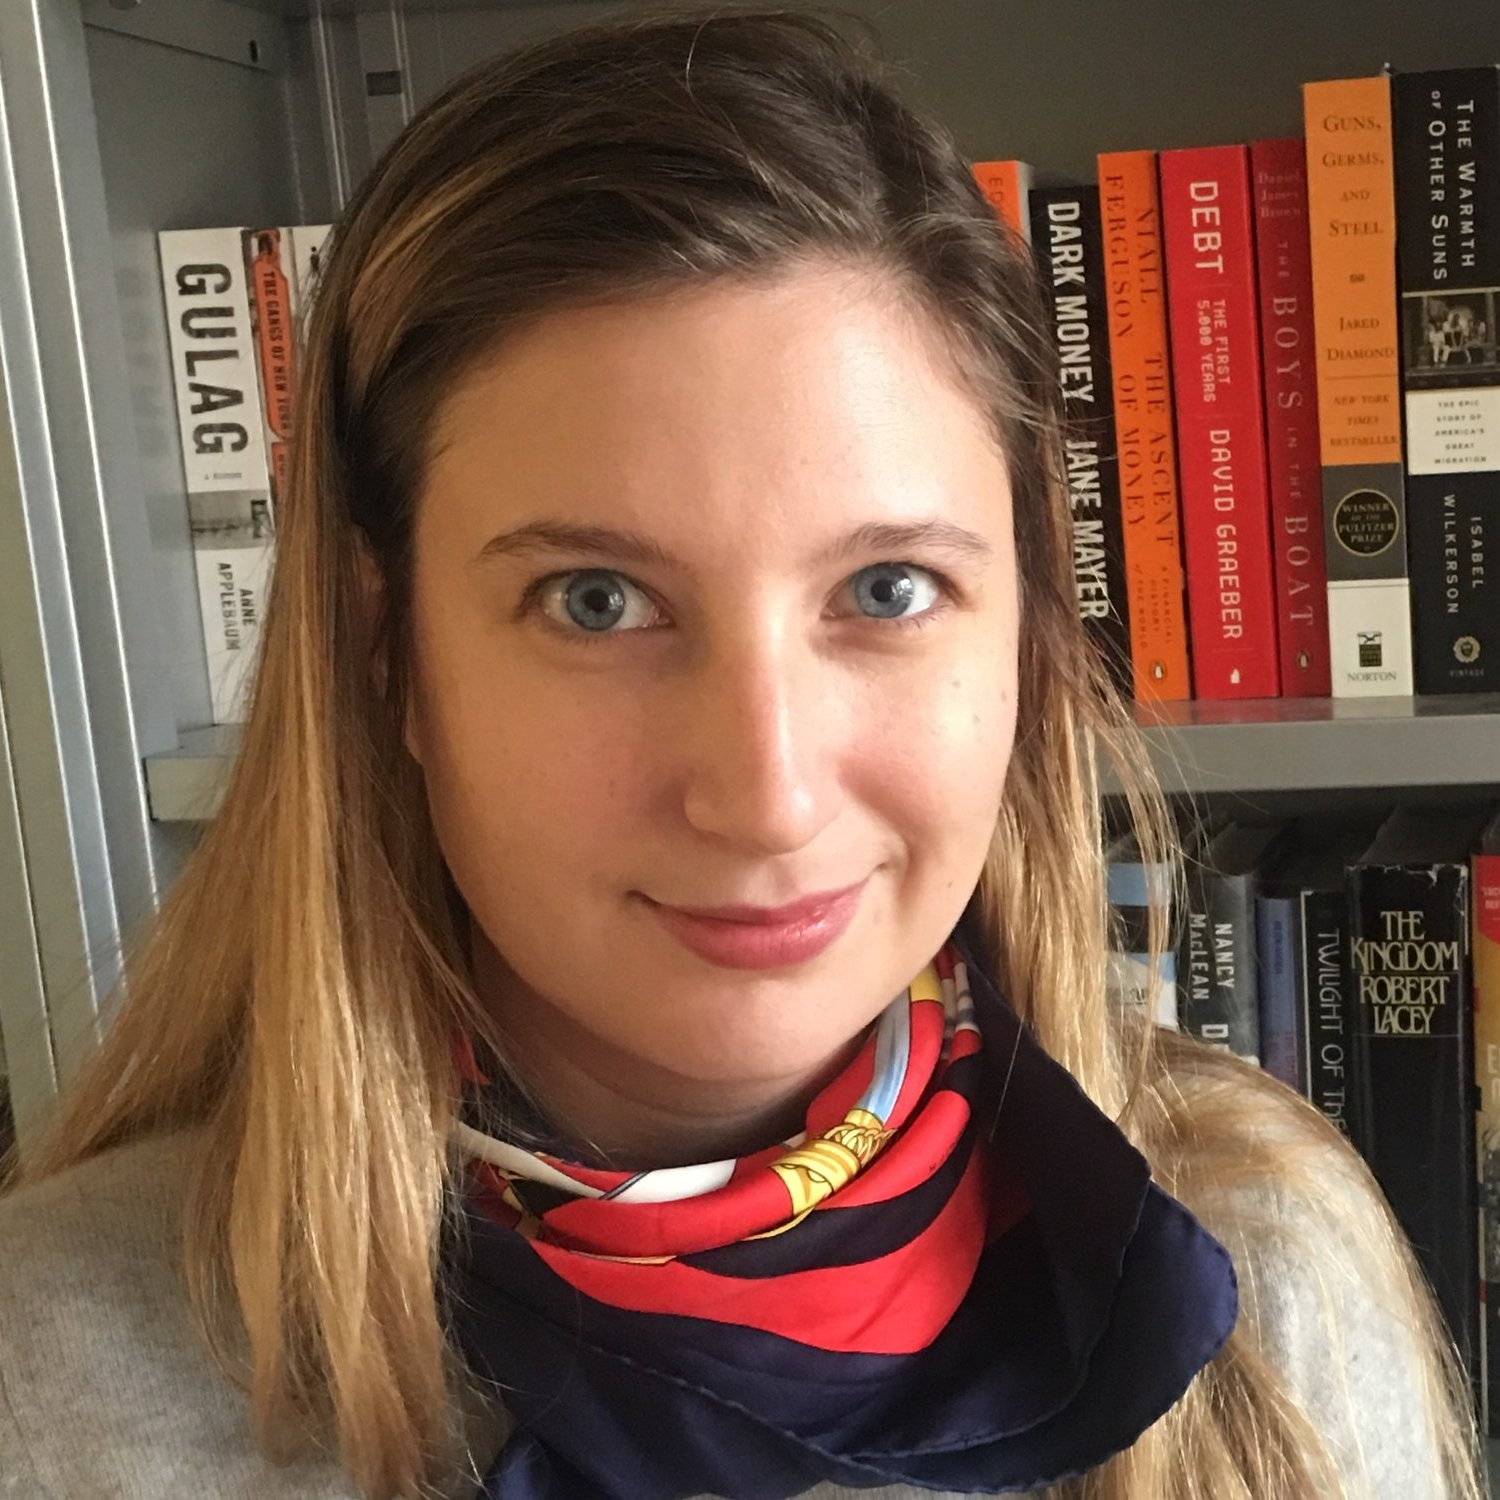 Claire Potter - Claire Potter is an associate editor of literary and serious nonfiction at Crown Publishers, a division of Penguin Random House. She has previously worked at Words Without Borders, the Feminist Press, and Guernica.